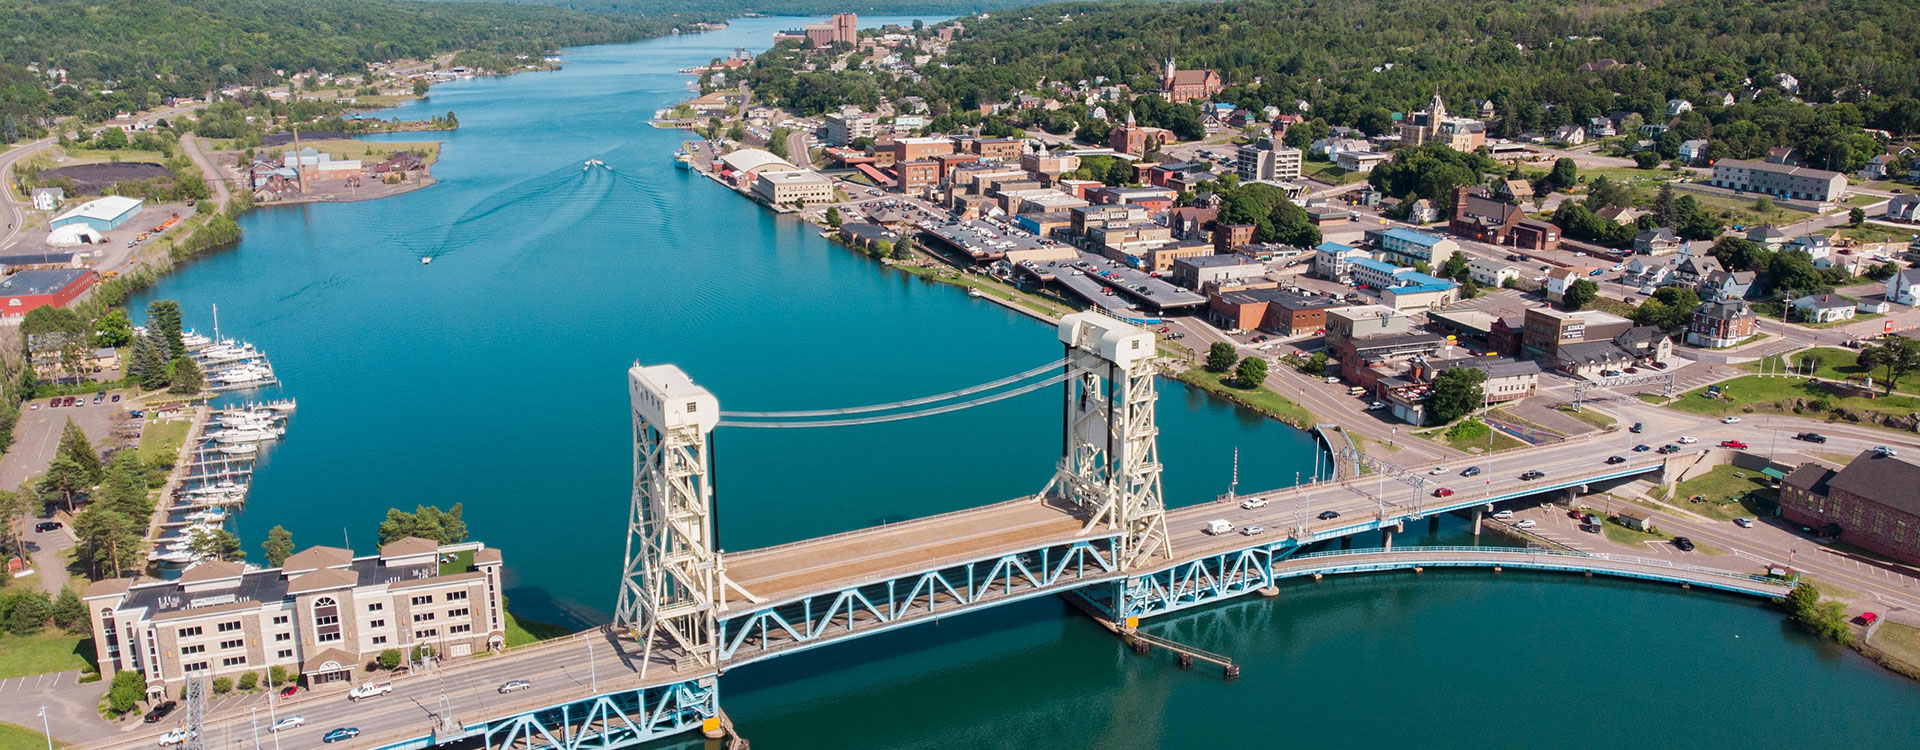 aerial view of the city of Houghton and lift bridge